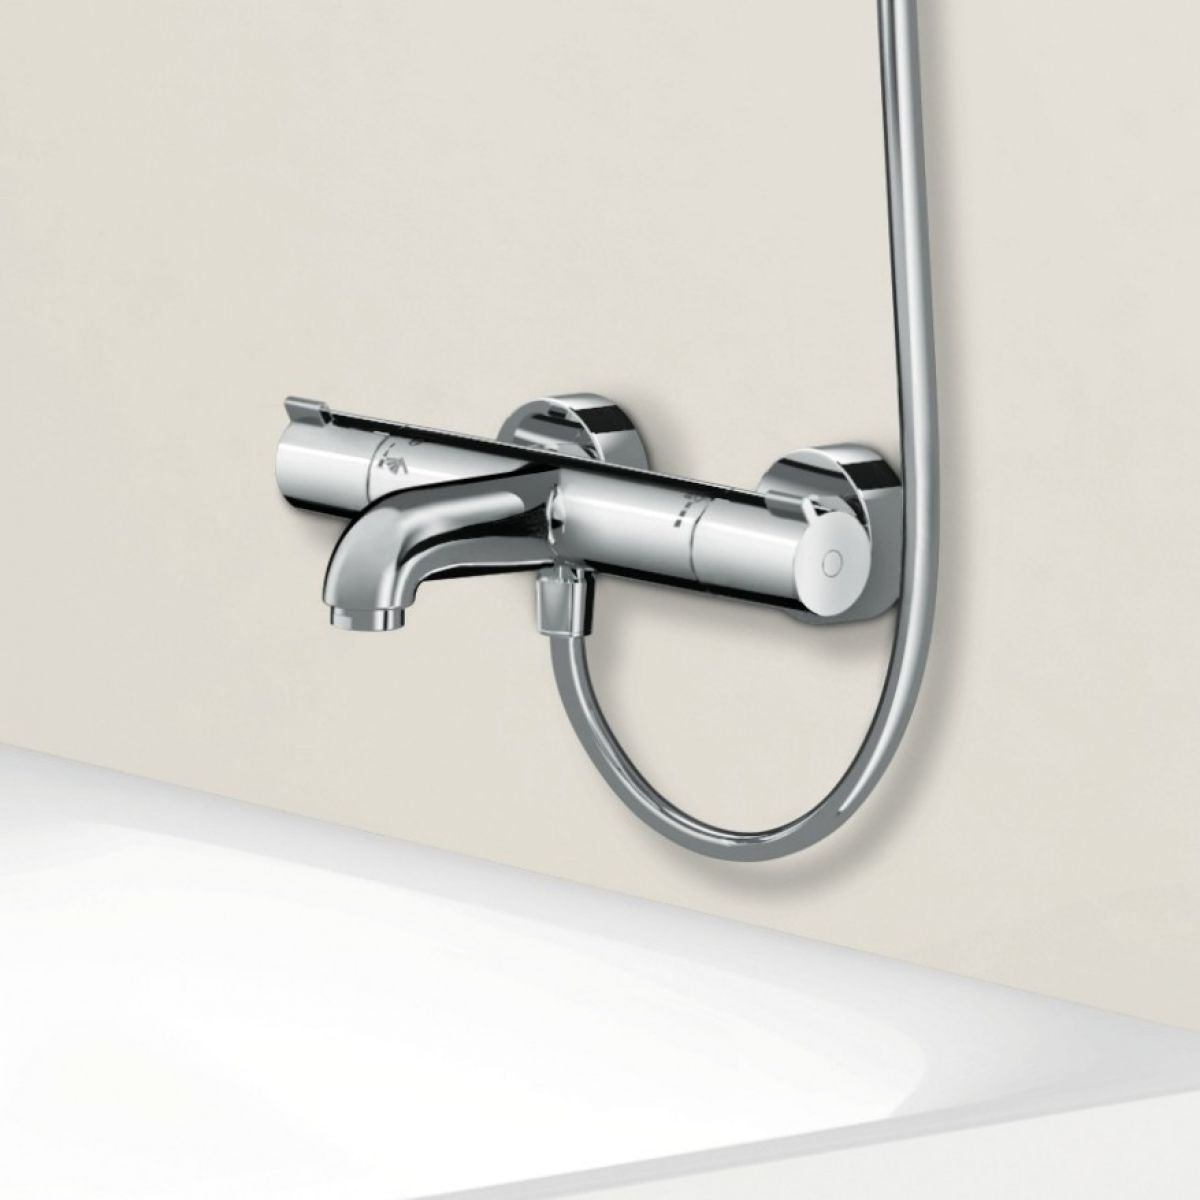 hansgrohe ecostat comfort exposed bath shower mixer uk. Black Bedroom Furniture Sets. Home Design Ideas